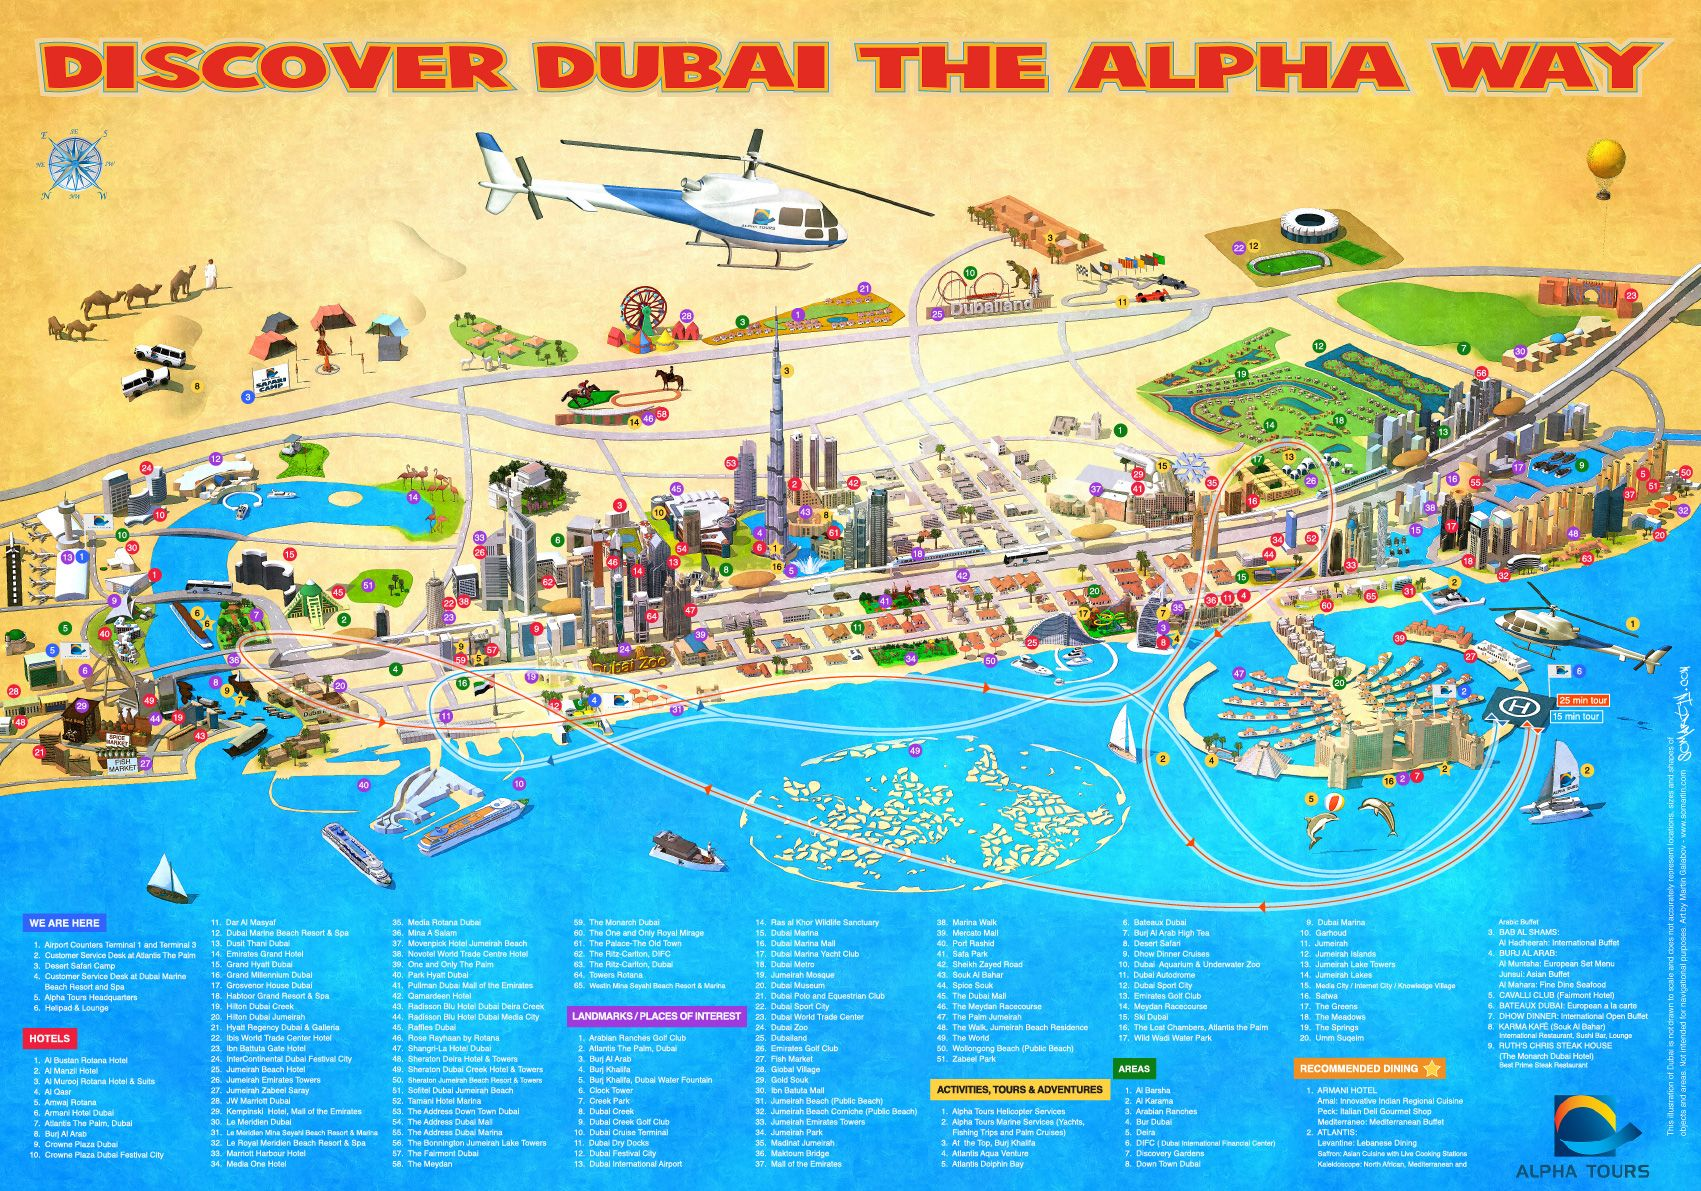 desert palm dubai location map Dubai Tourist Map Google Search Dubai Map Dubai Tourist Map desert palm dubai location map